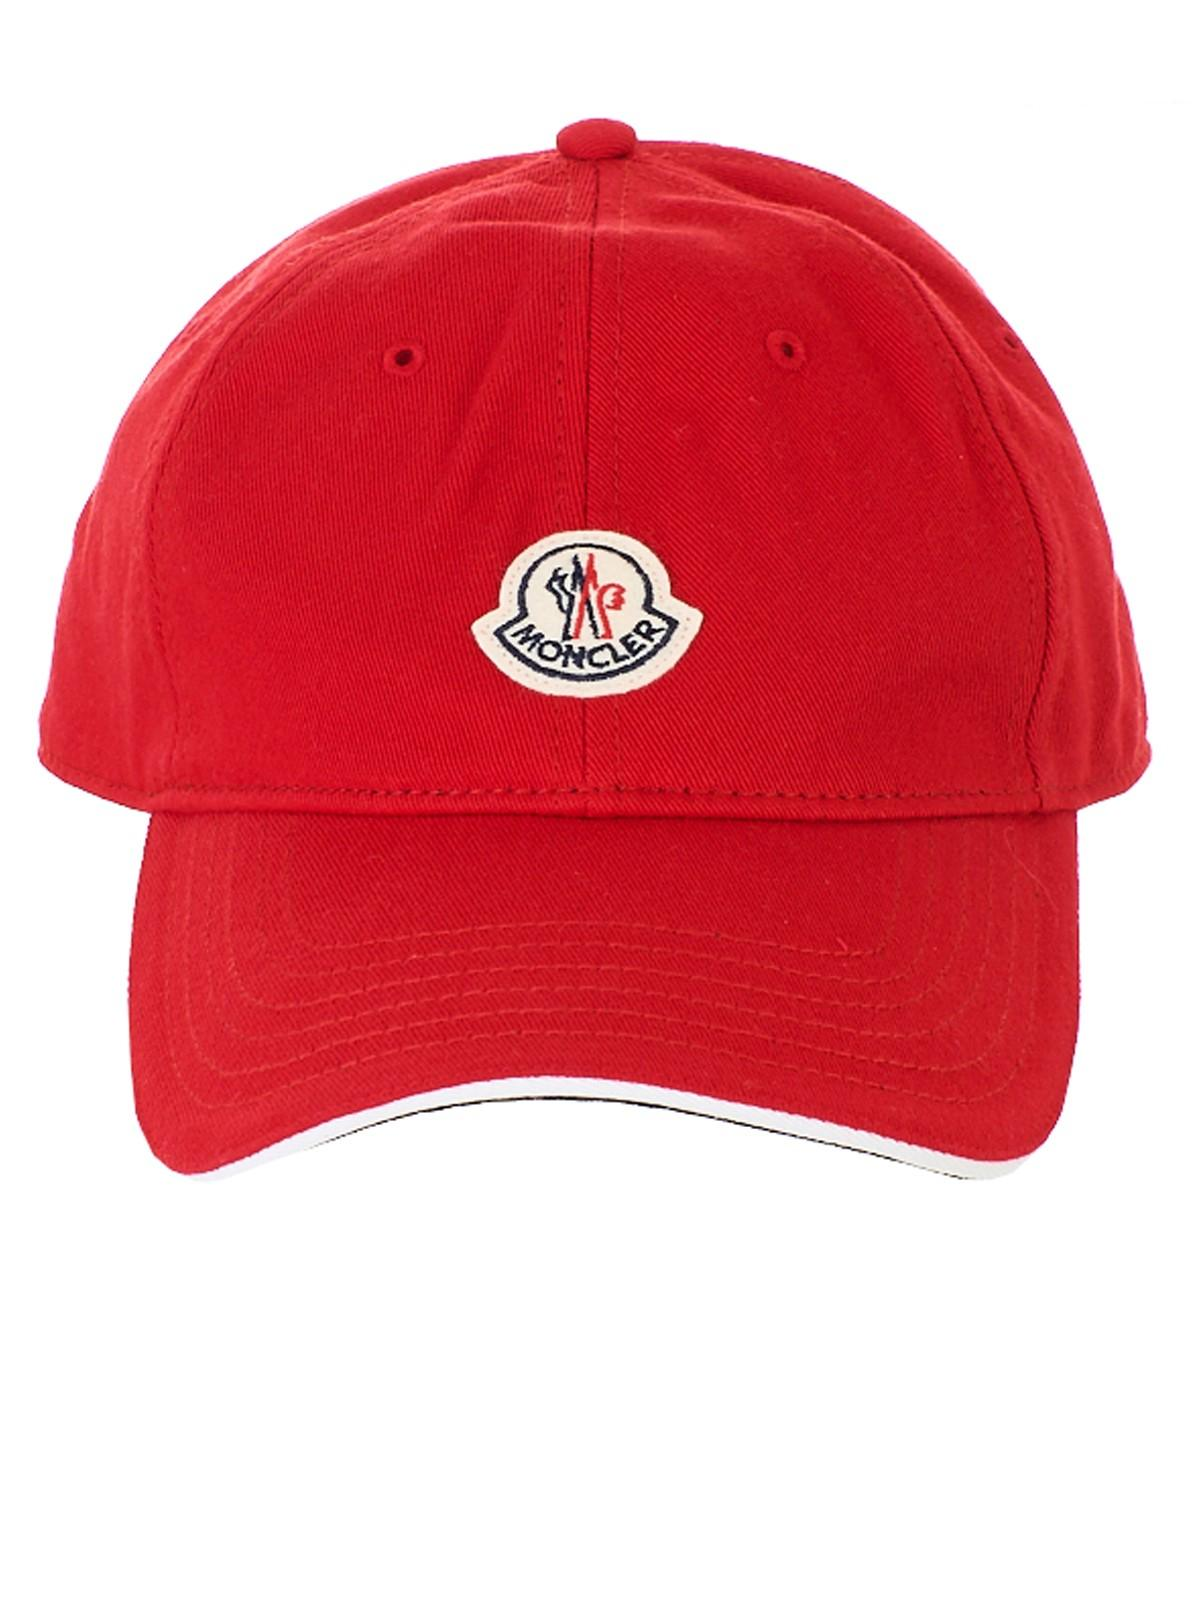 2e34d3b0b9cc Lyst - Moncler Logo Patch Cap in Red for Men - Save 52%